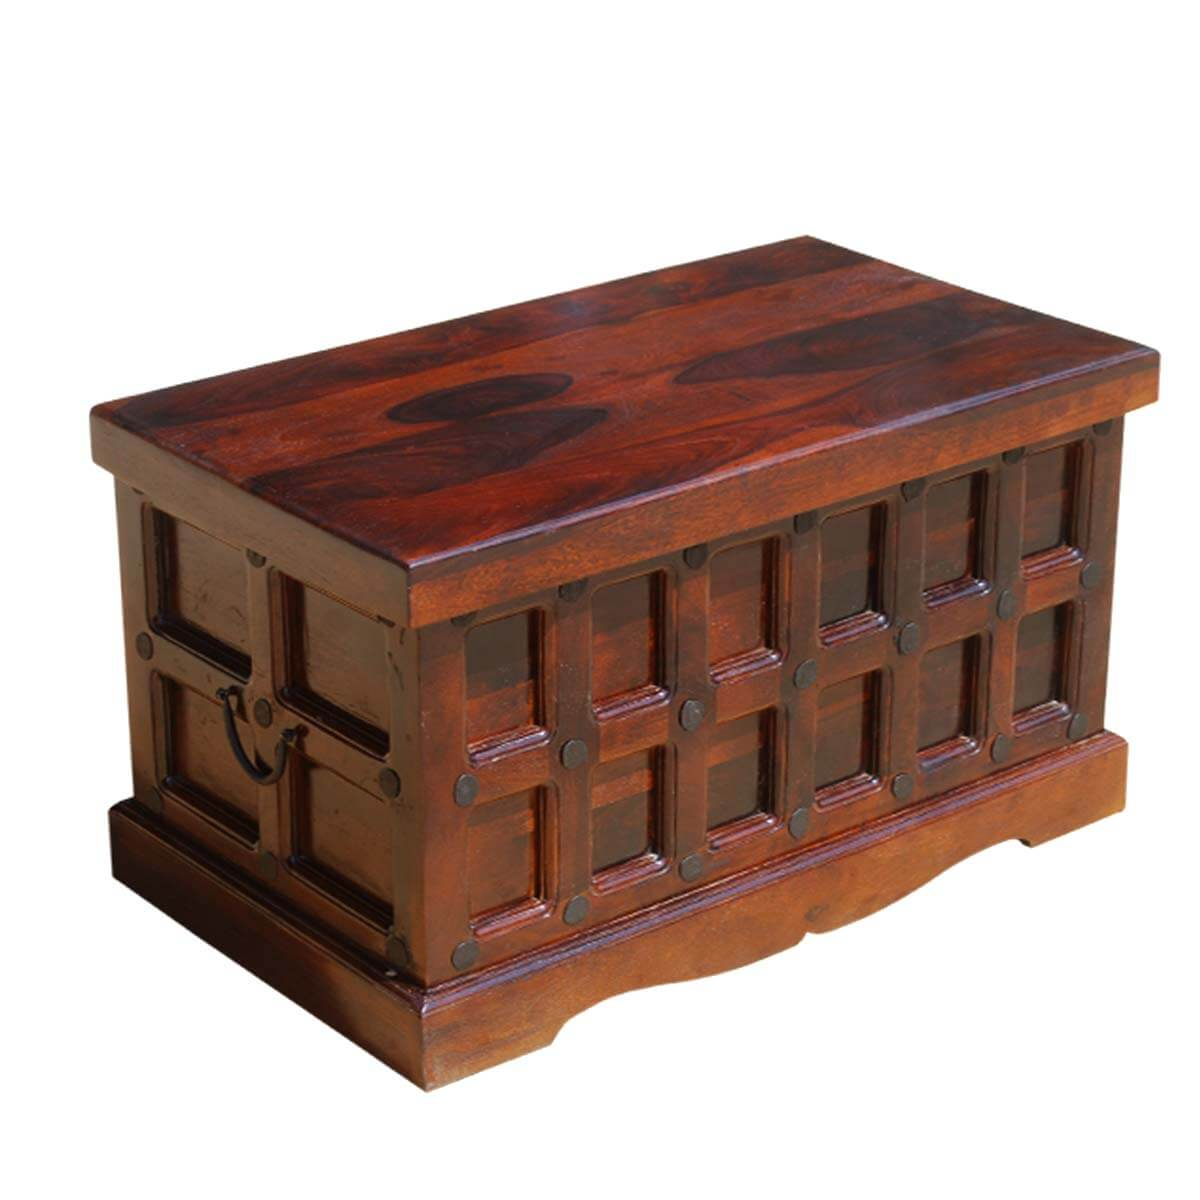 Wonderful image of Home Solid Wood Trunk Coffee Table Blanket Storage Chest with #B28C19 color and 1200x1200 pixels